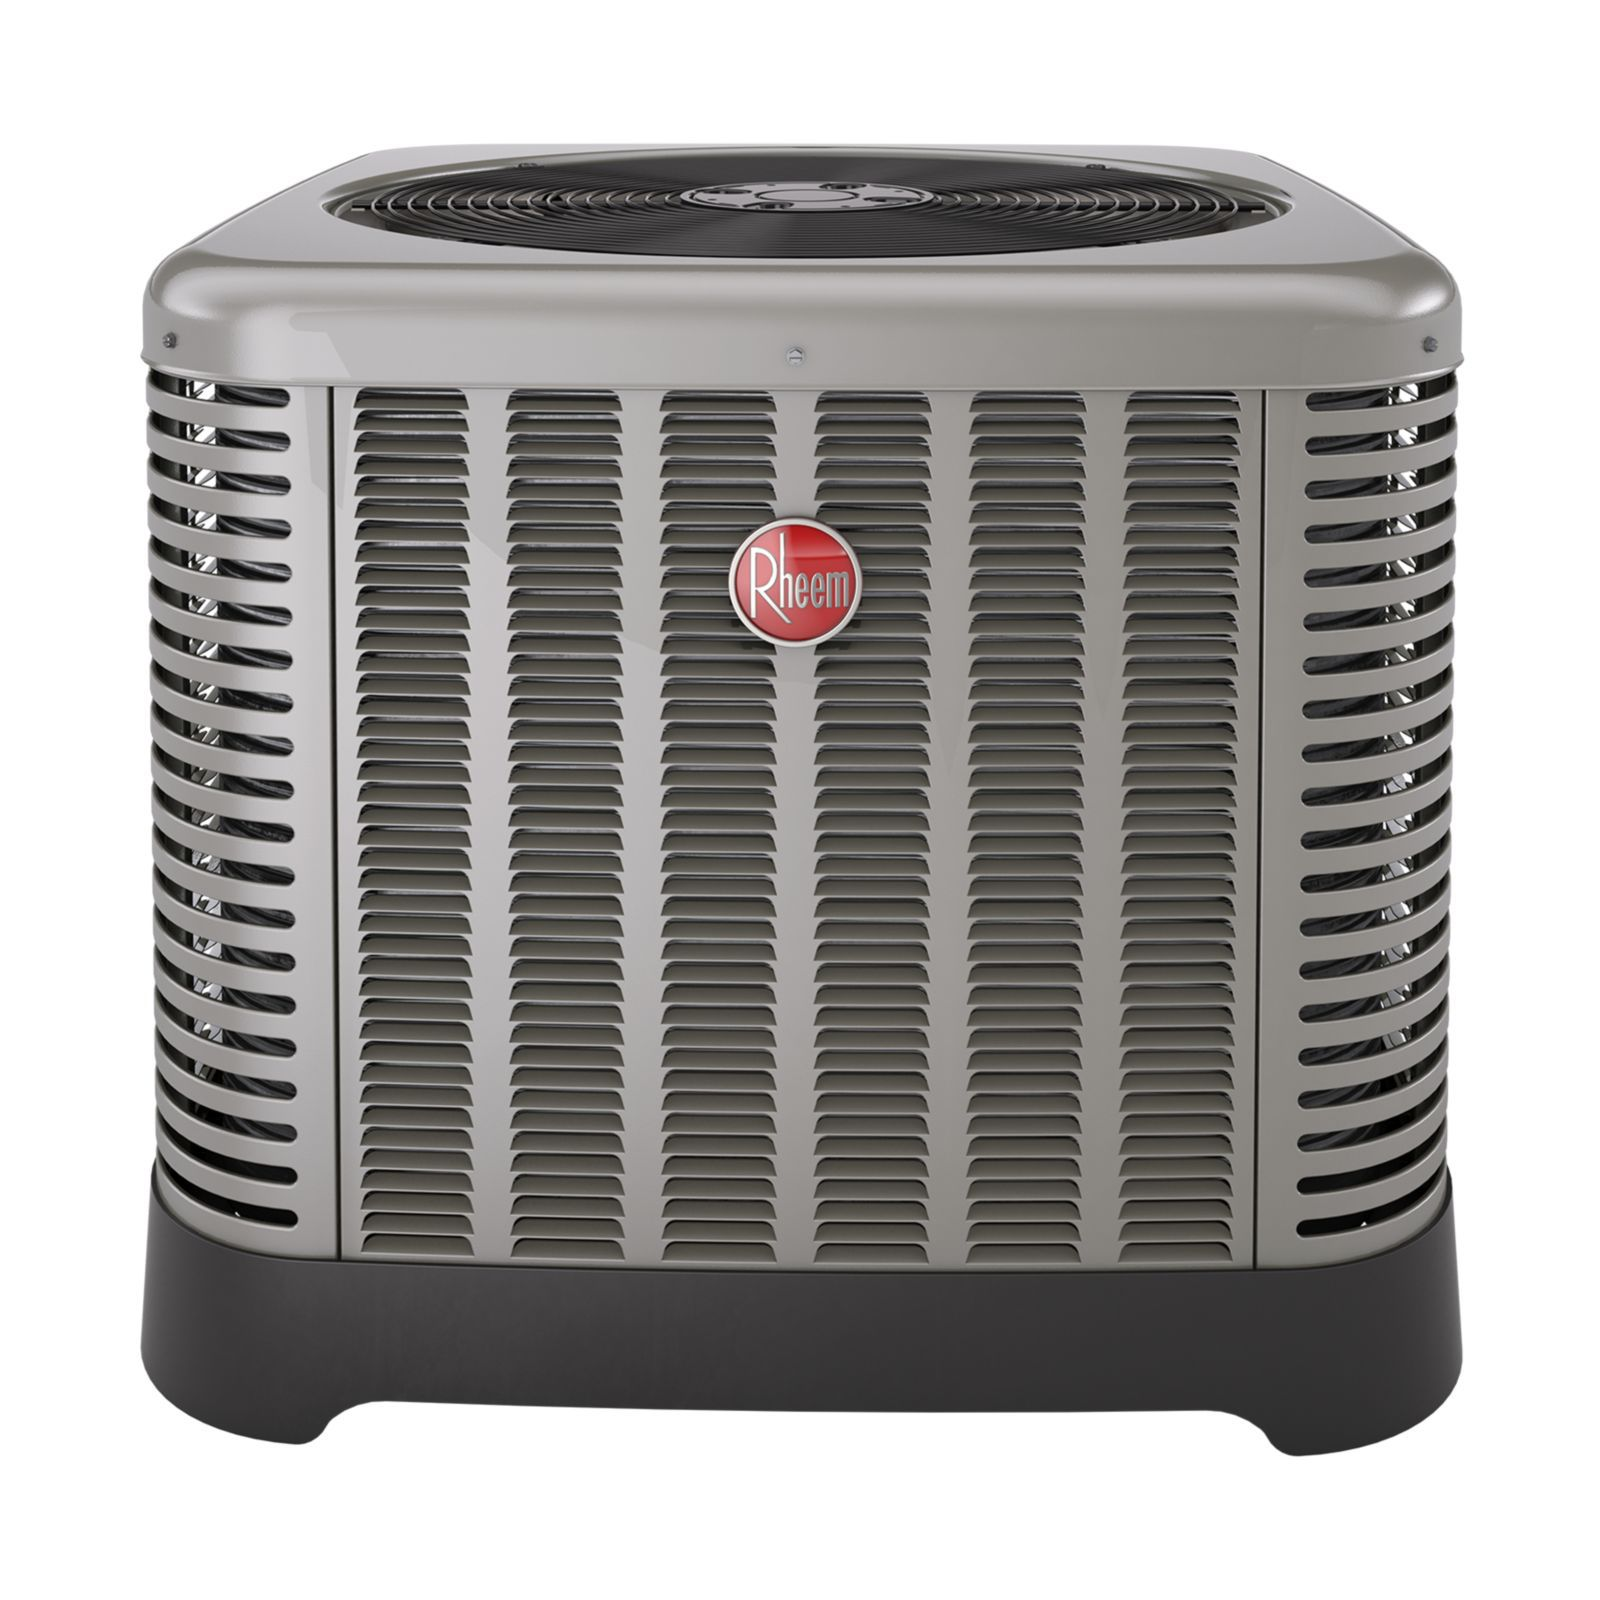 Rheem RP1524BJ1NA -  2 Ton Classic Series Heat Pump 15 SEER Single Stage Heat Pump 208/230 Volt Single Phase 60 Hz